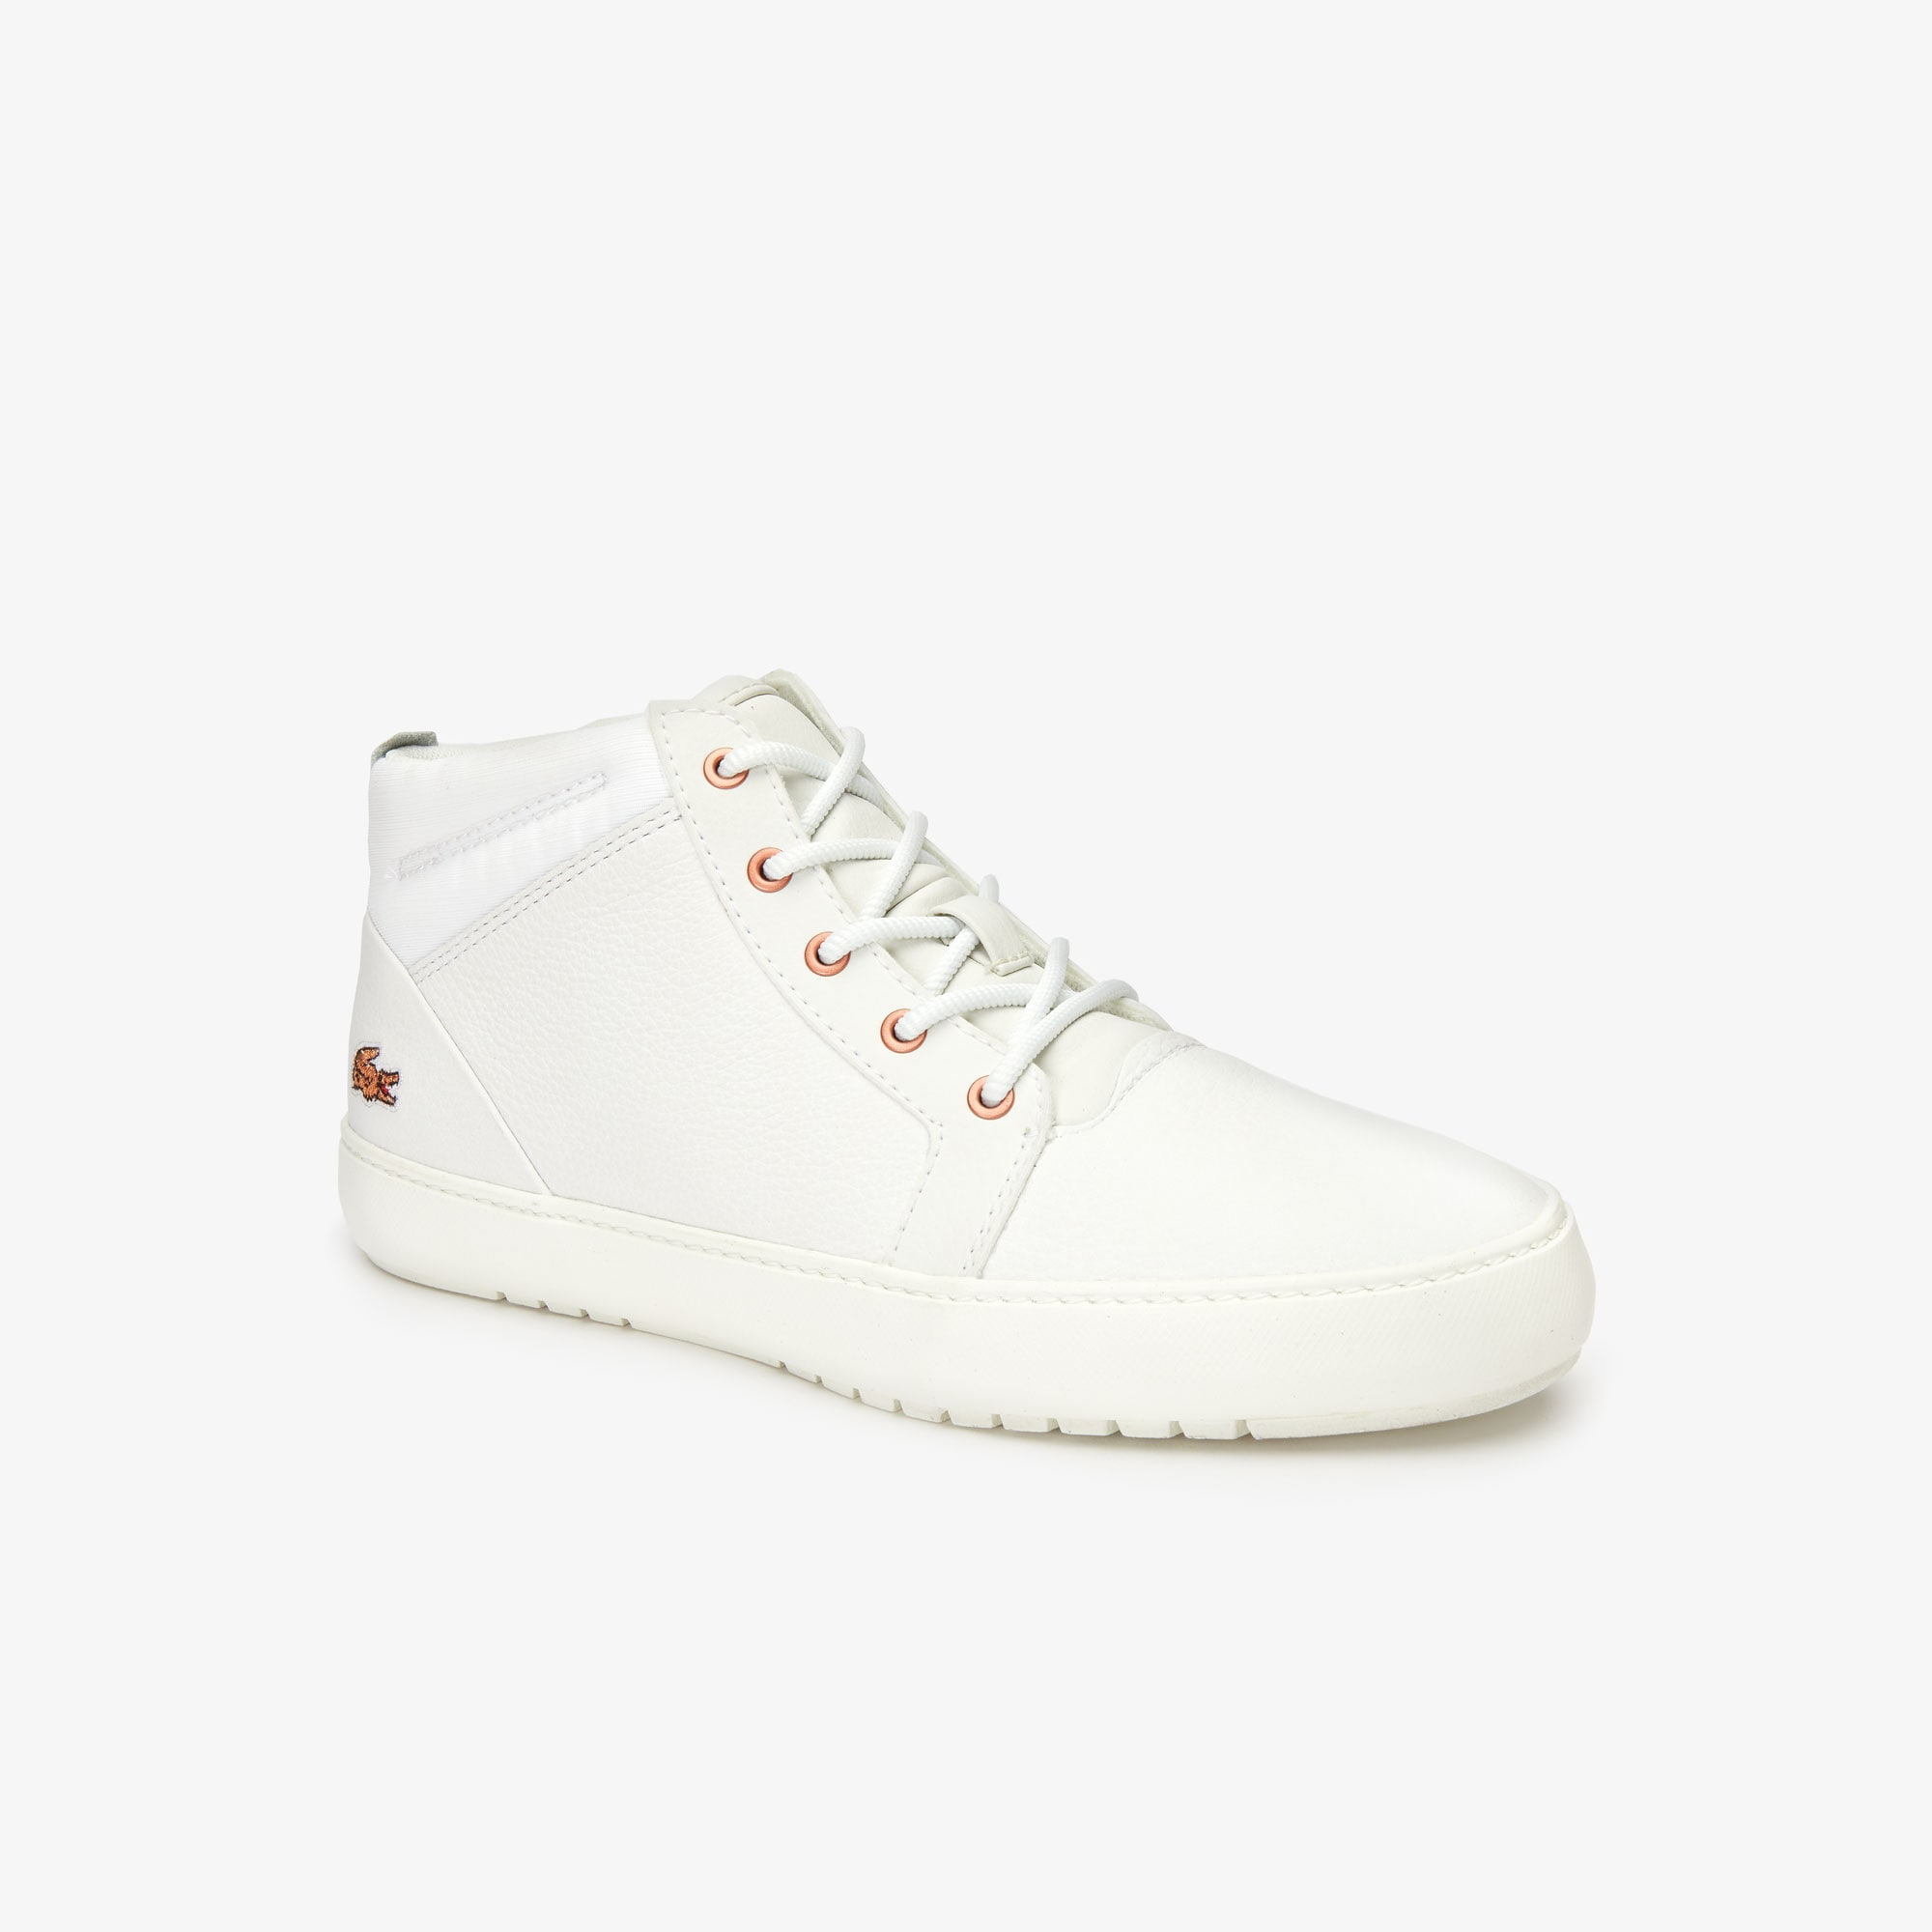 Women's Ampthill Leather Sneakers   LACOSTE